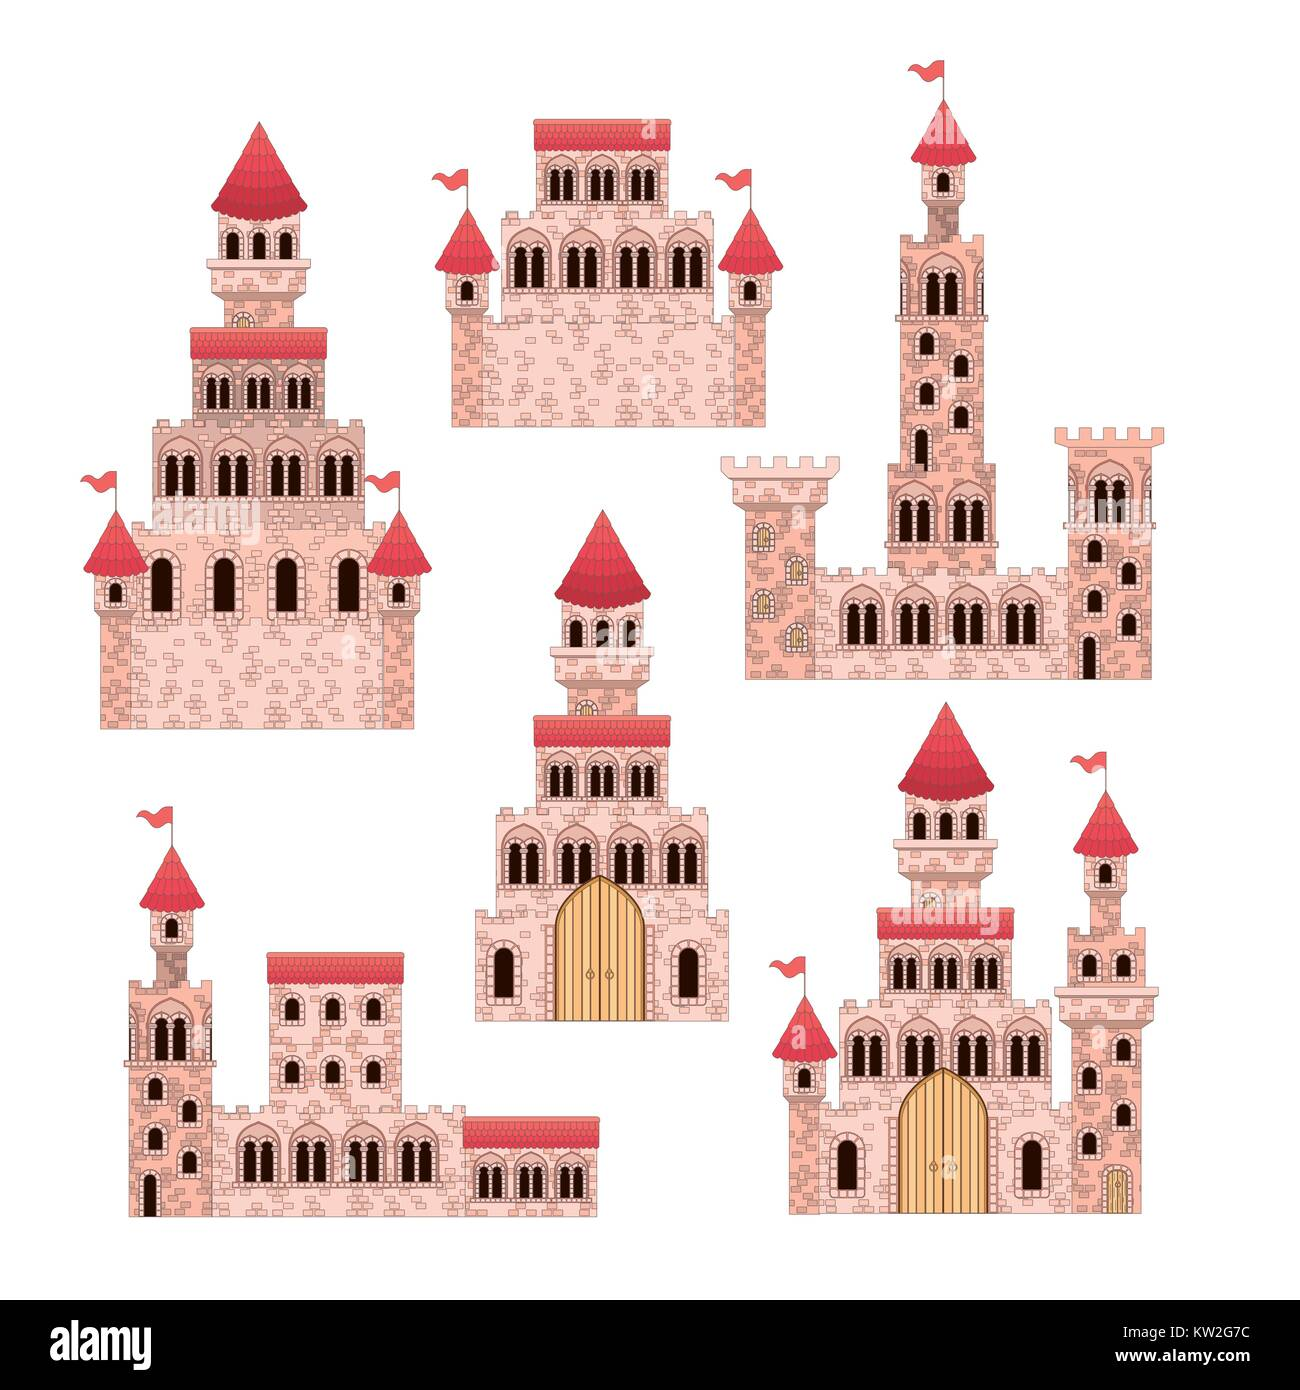 set of pink castles of fairy tales in white background - Stock Image